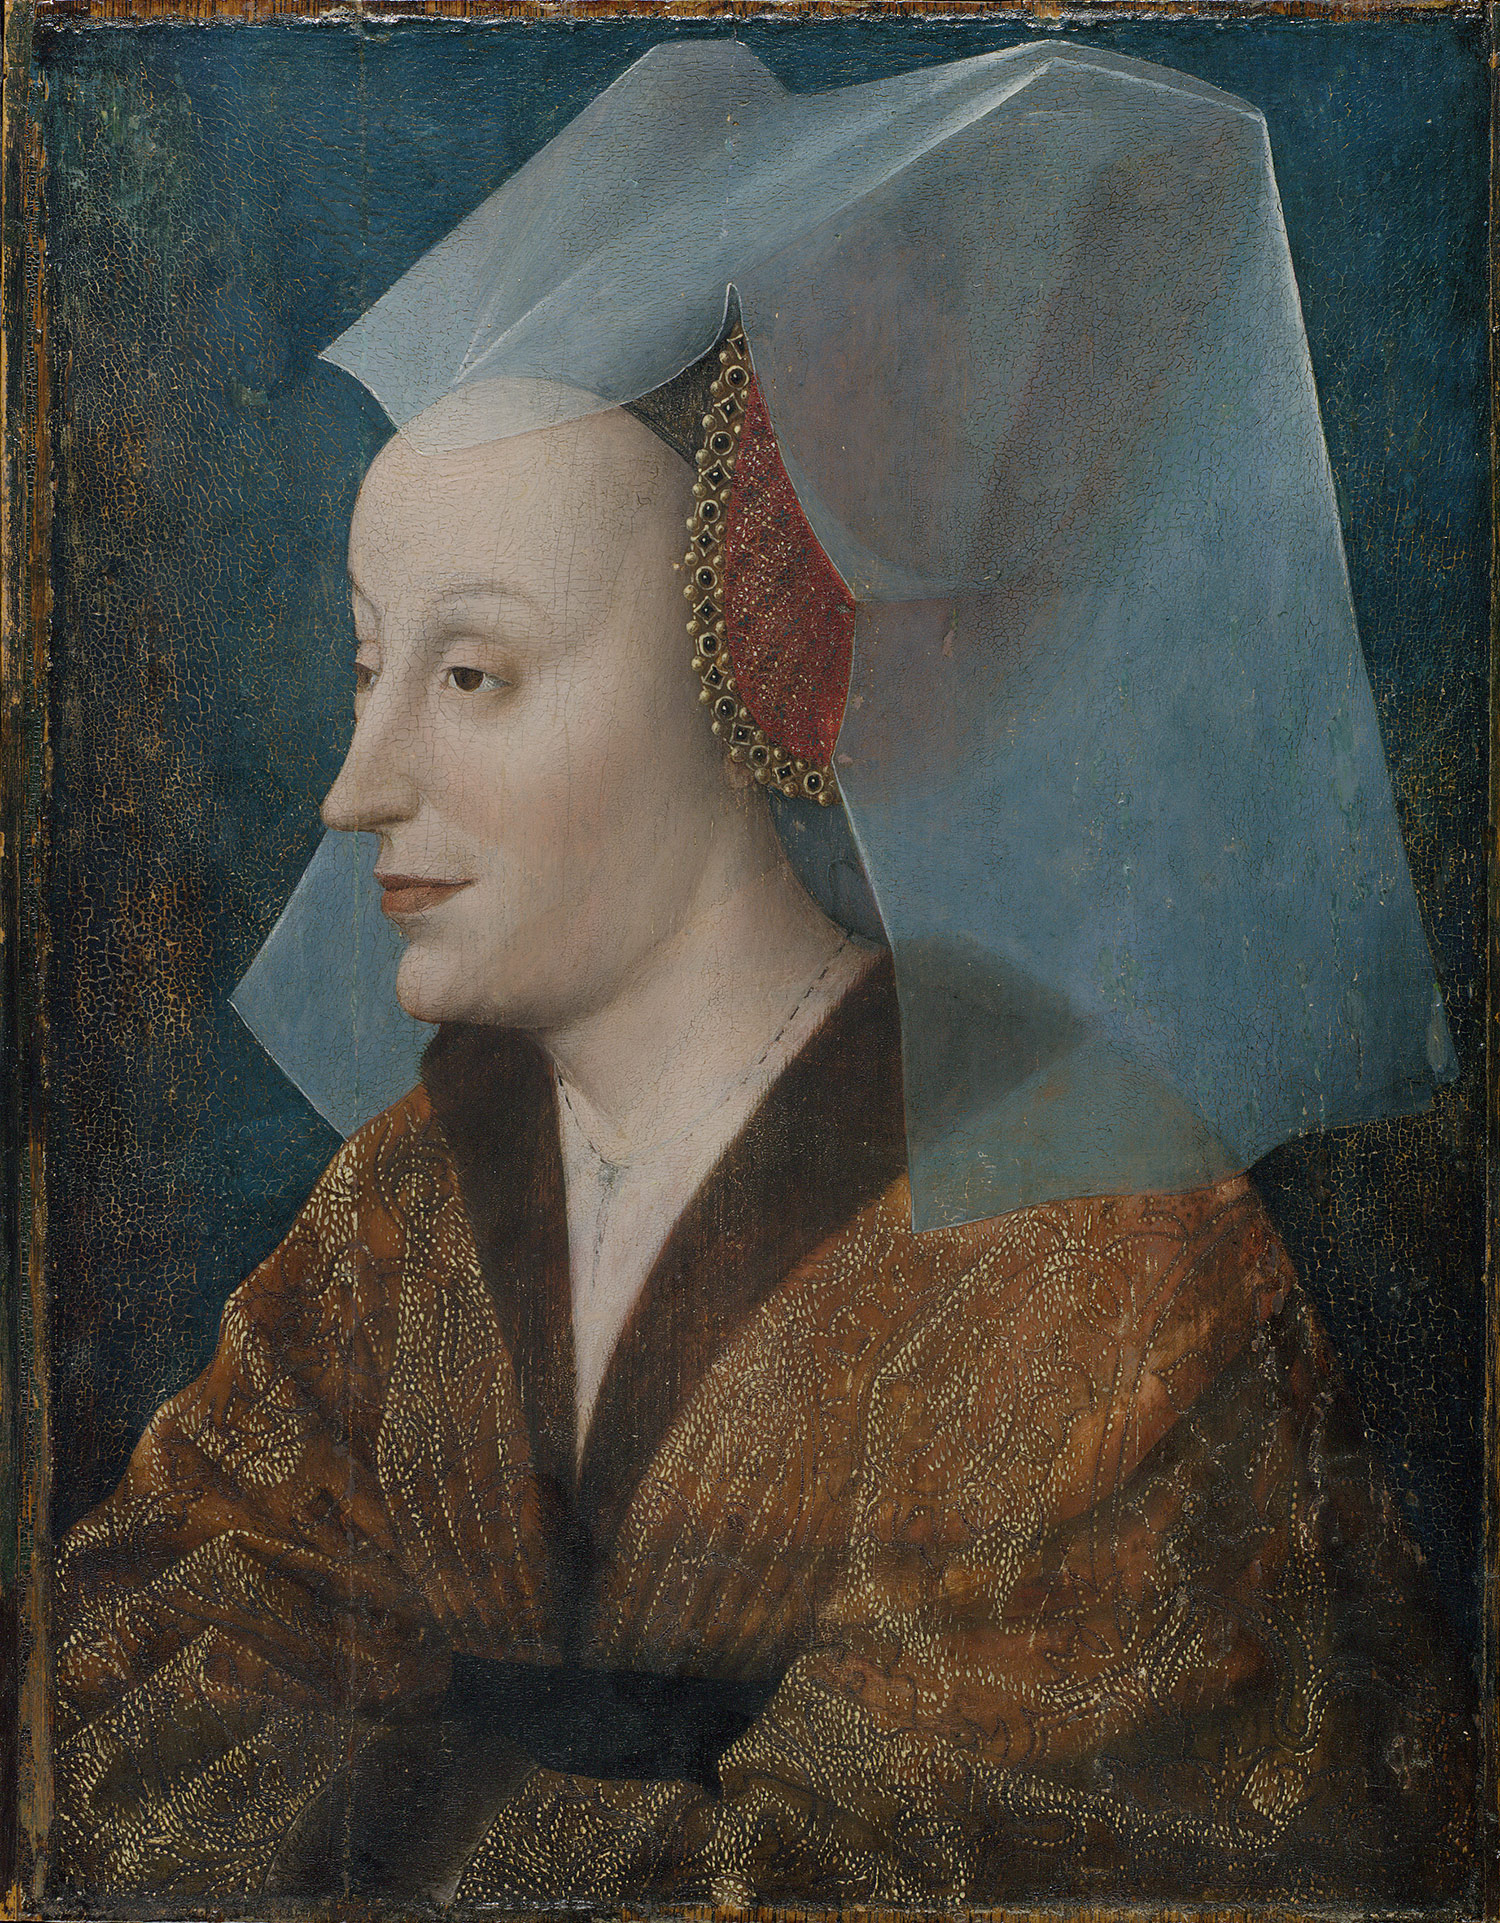 15th century portrait